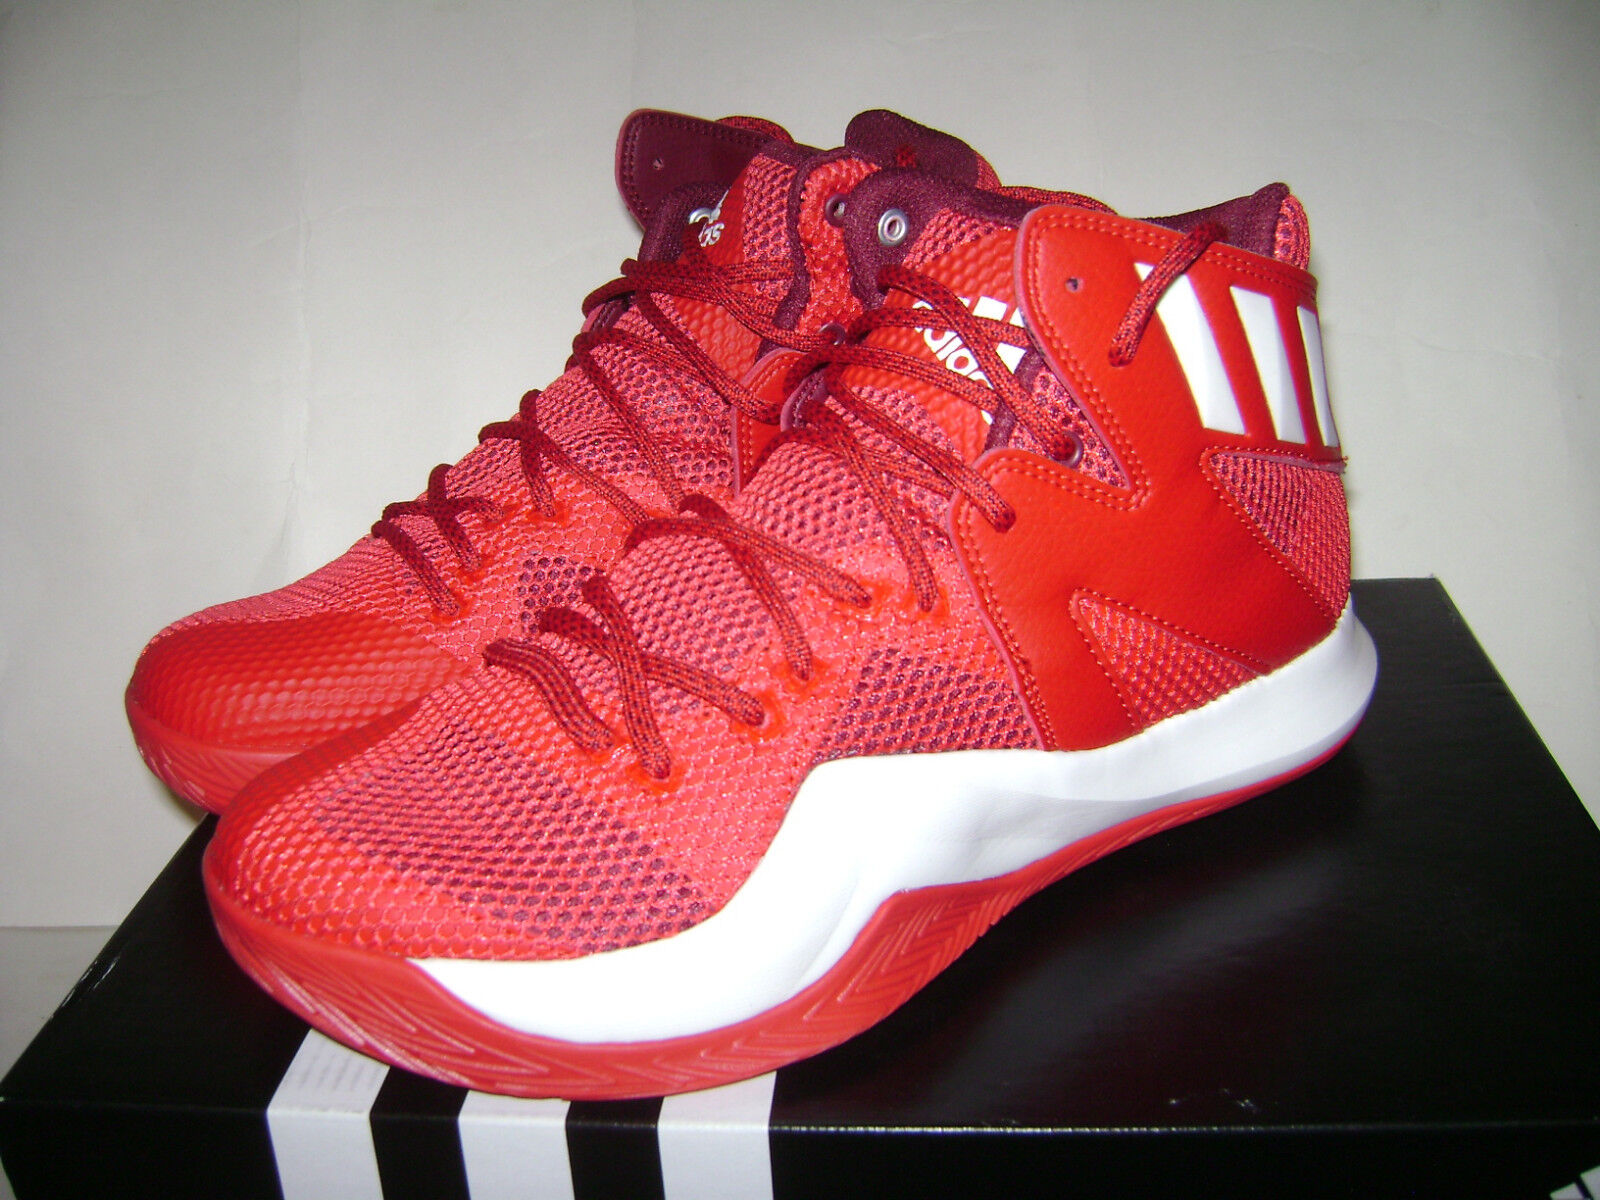 NIB ADIDAS Crazy Bounce Men Basketball Shoes Sneakers size 6.5 Red White B72768